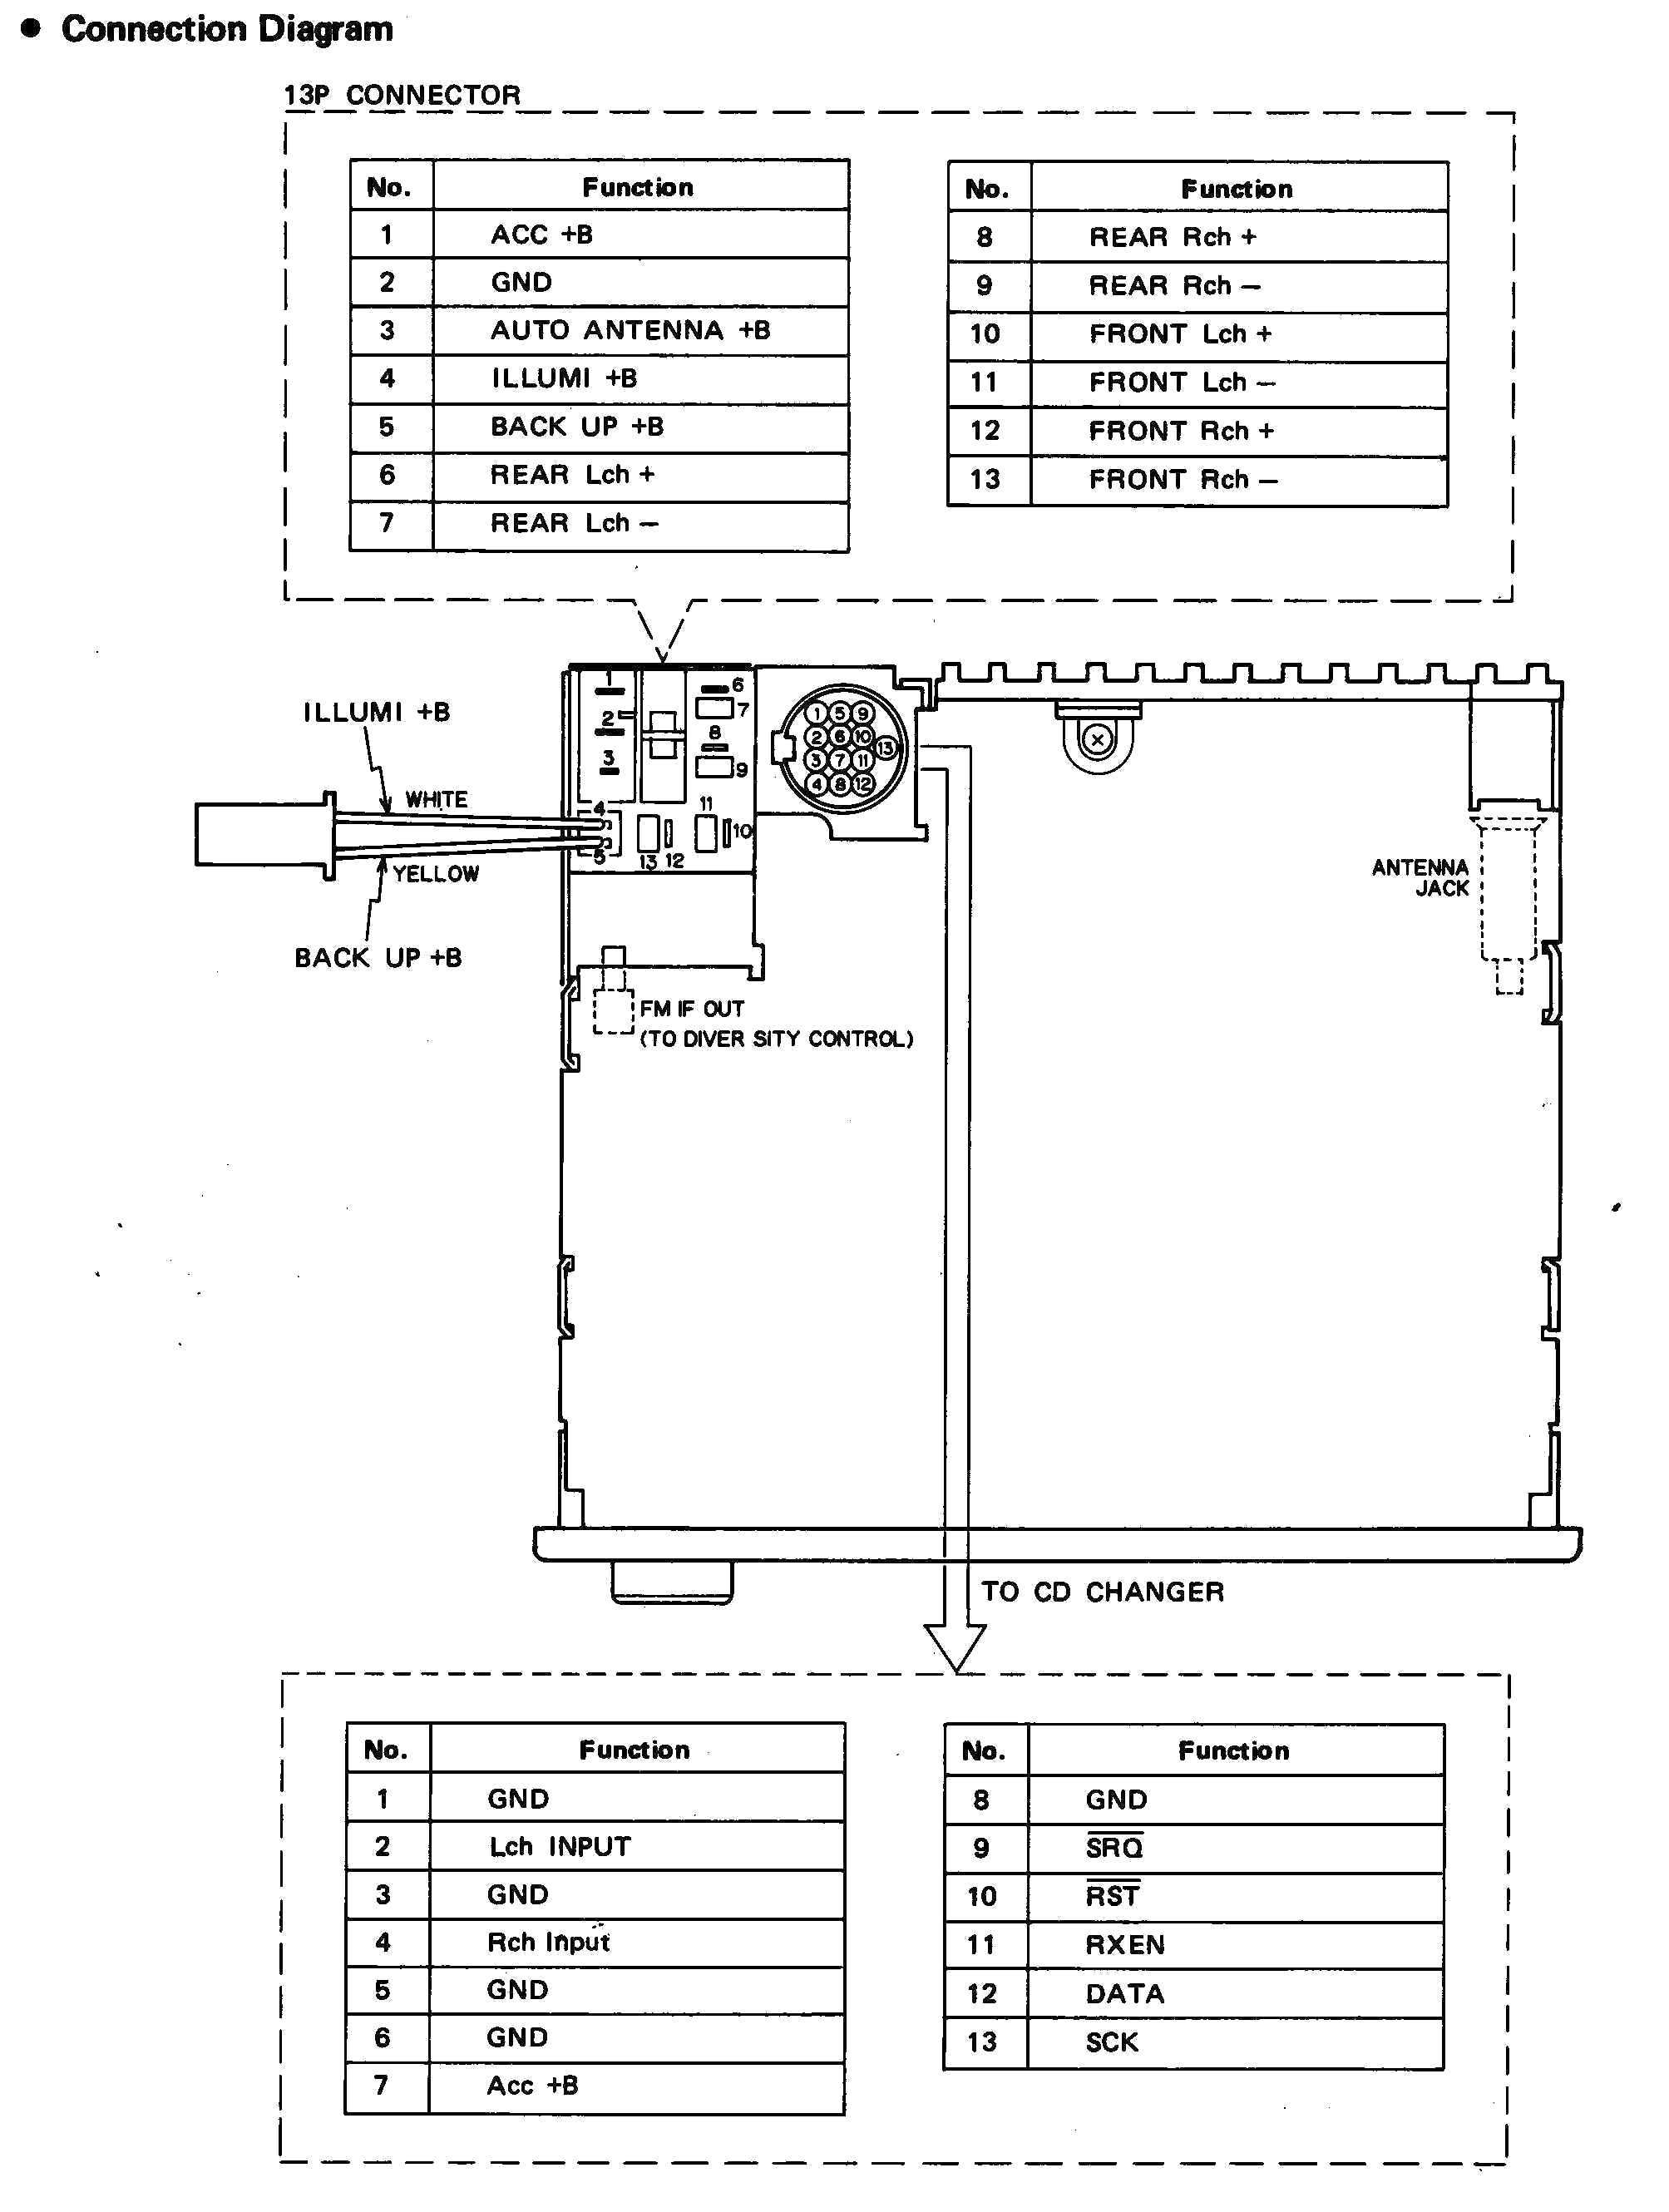 hes 1006 12 24d 630 wiring diagram Download-home speaker wiring diagram Download Nissan navara d40 radio wiring diagram 9 s DOWNLOAD Wiring Diagram 5-k